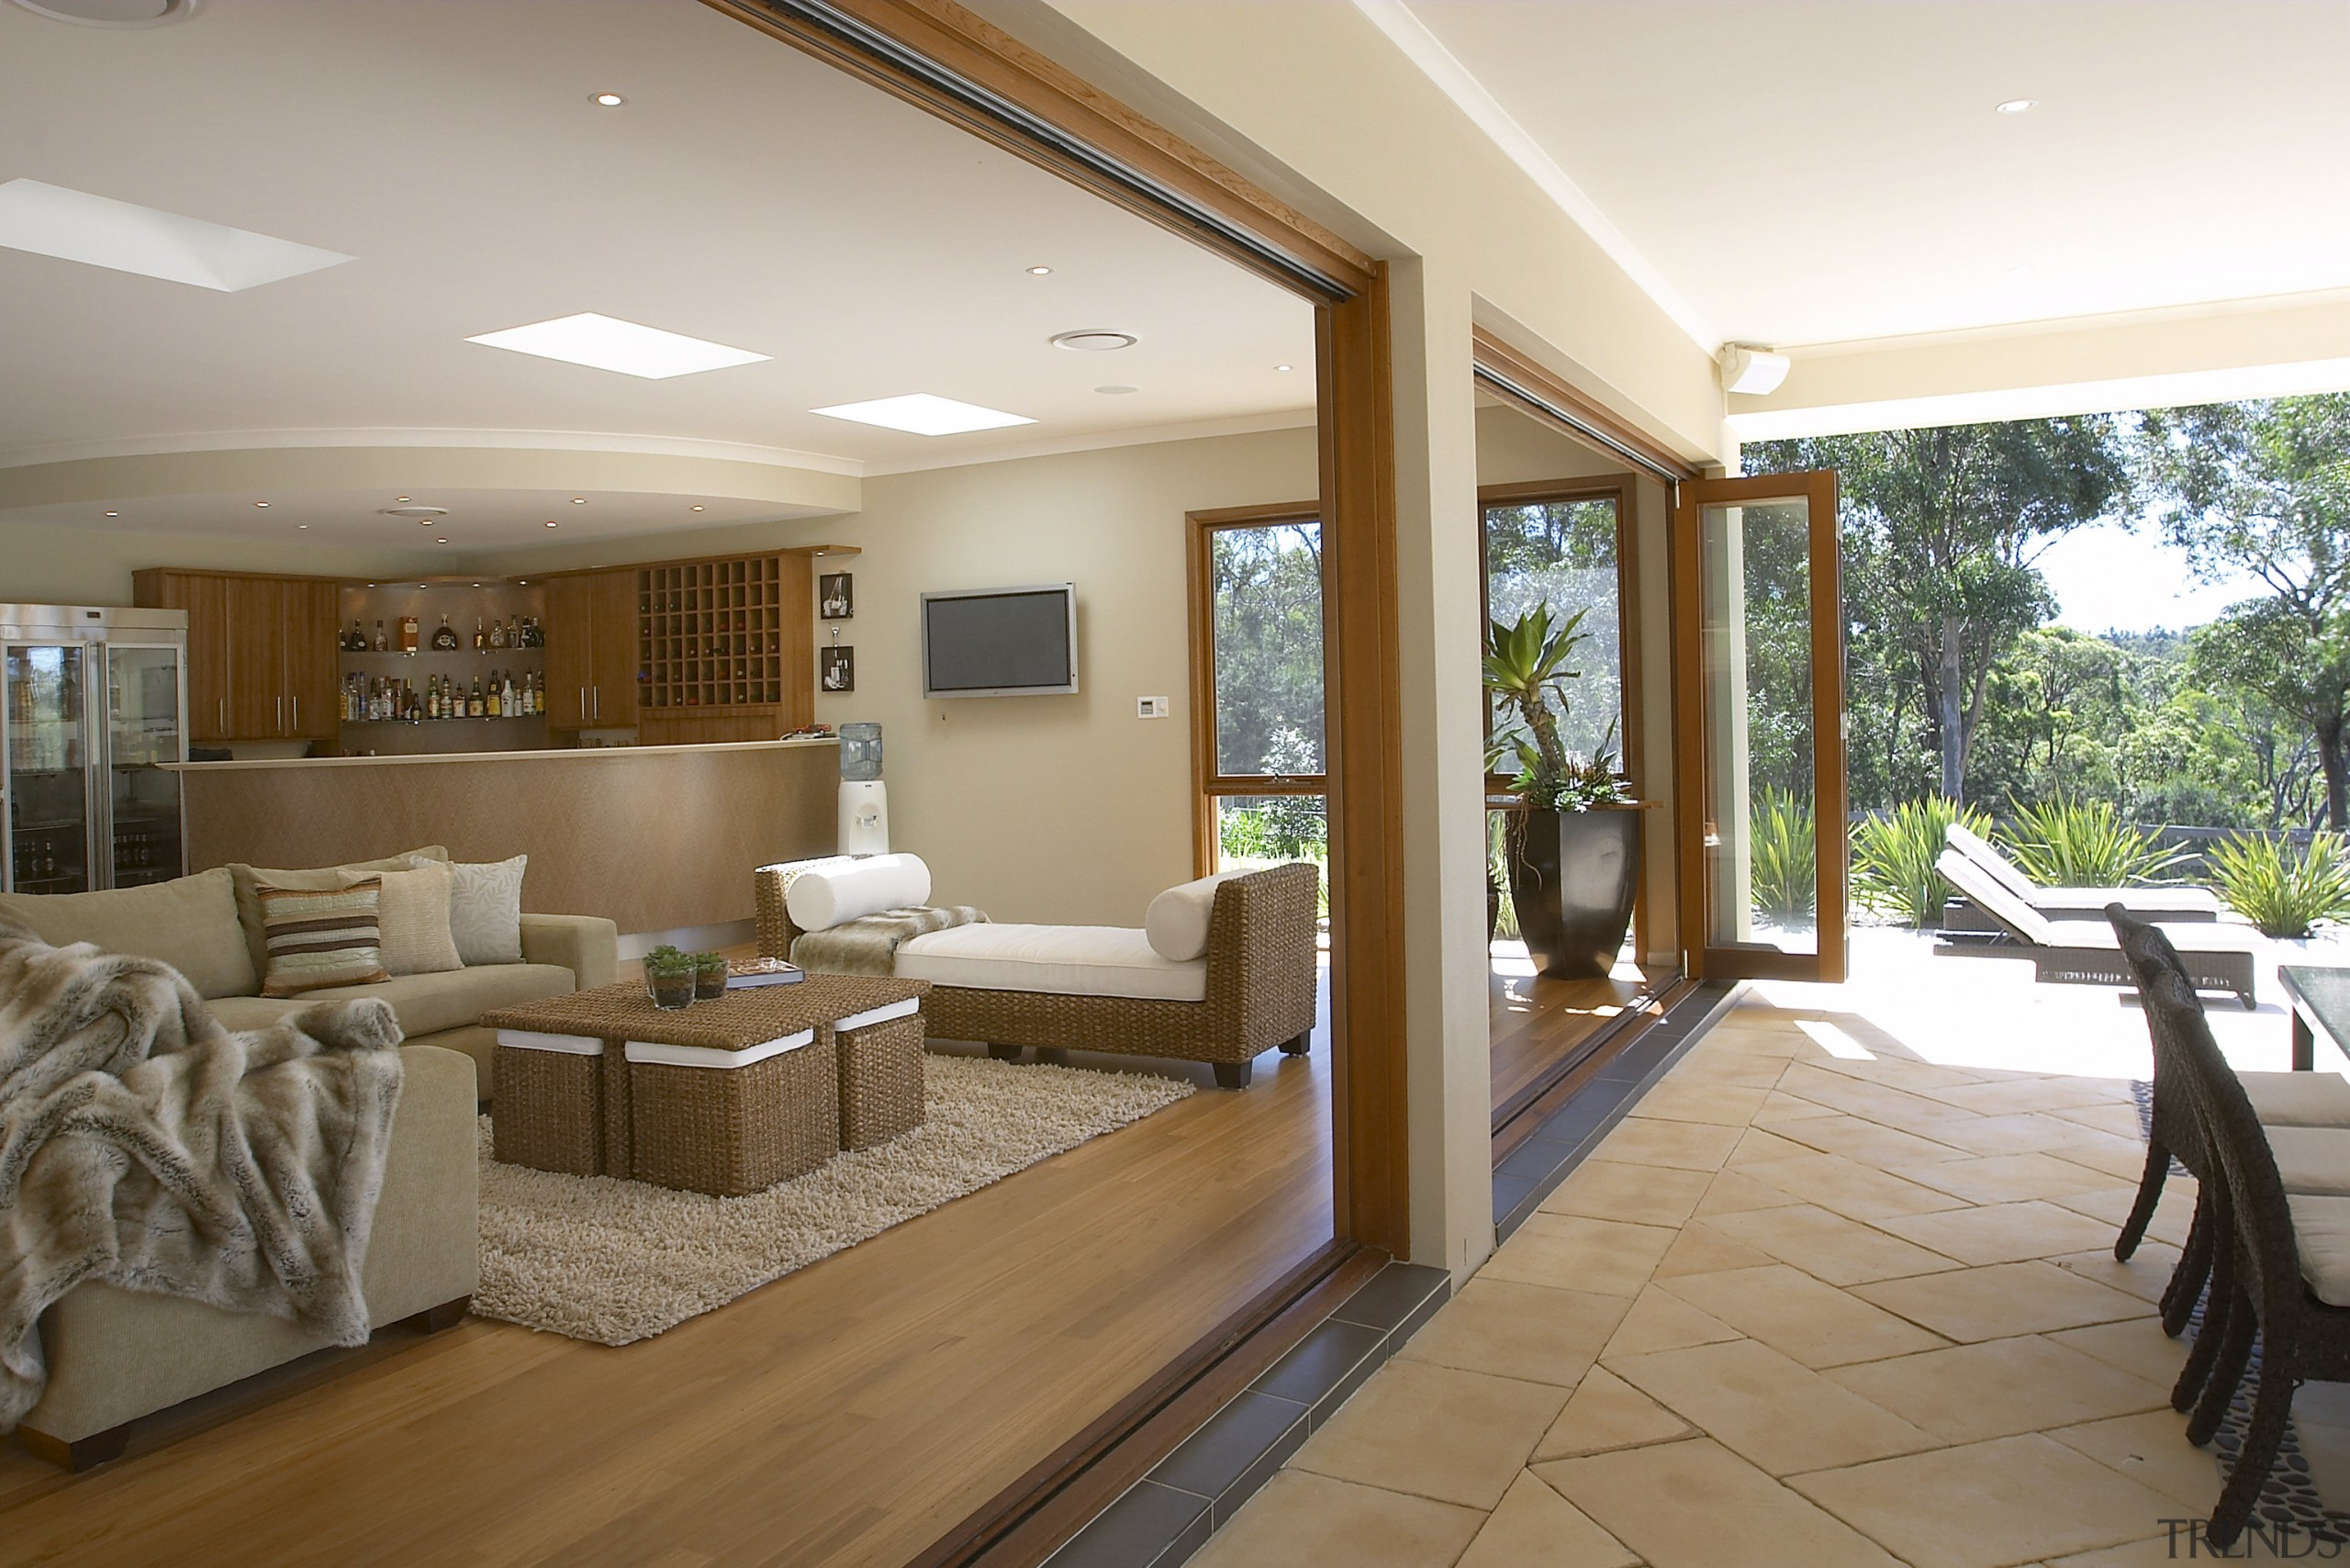 View of the outdoor area and a lounge ceiling, estate, floor, flooring, home, house, interior design, living room, property, real estate, room, window, brown, white